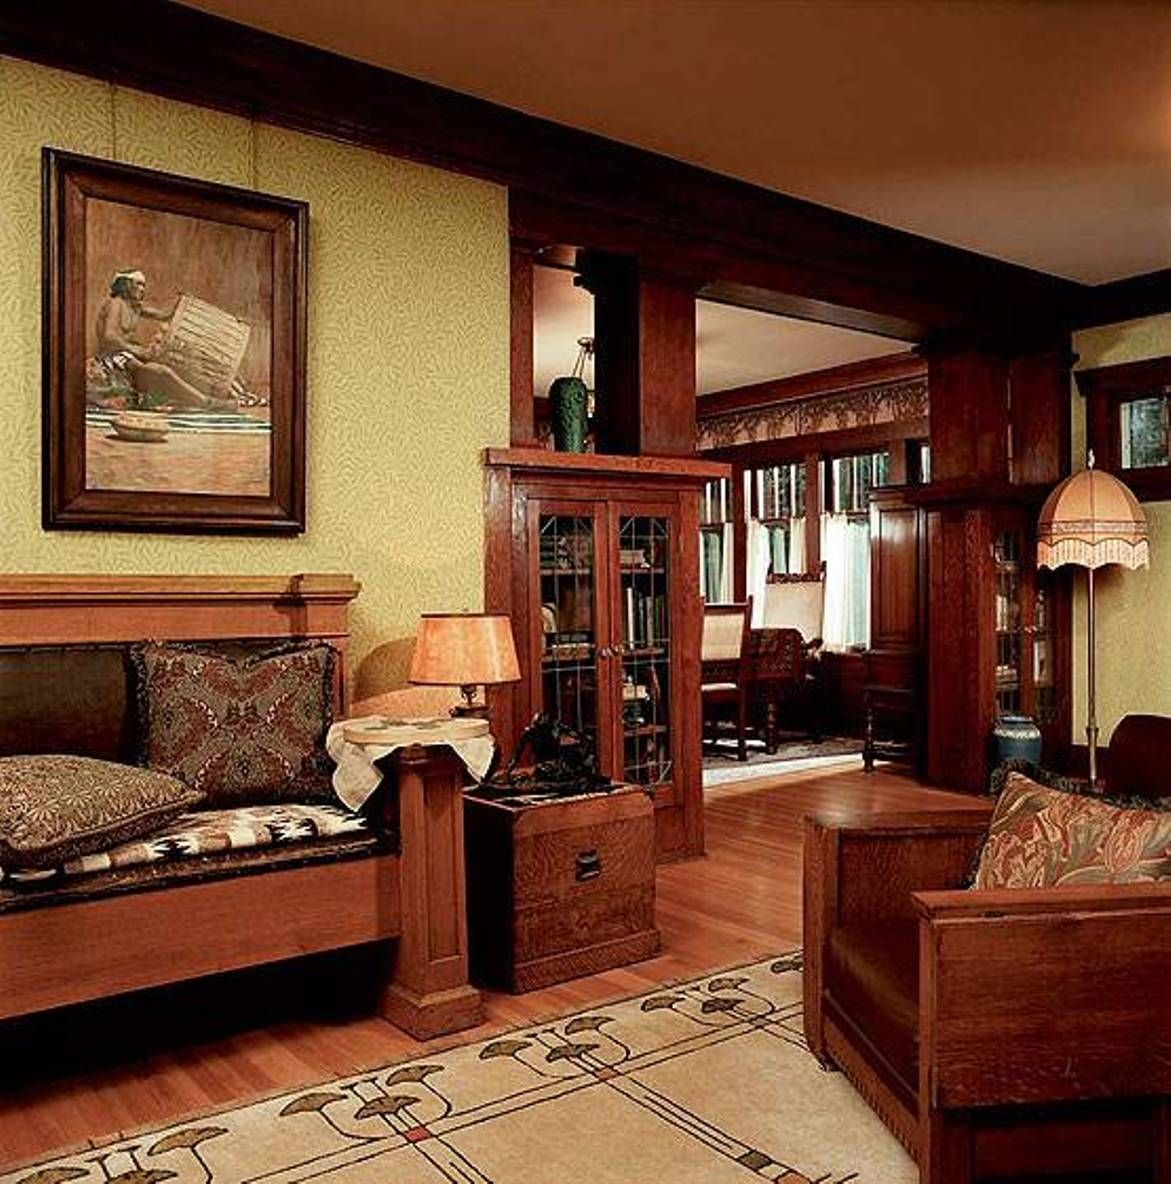 Home design and decor craftsman interior decorating for Home interior styles